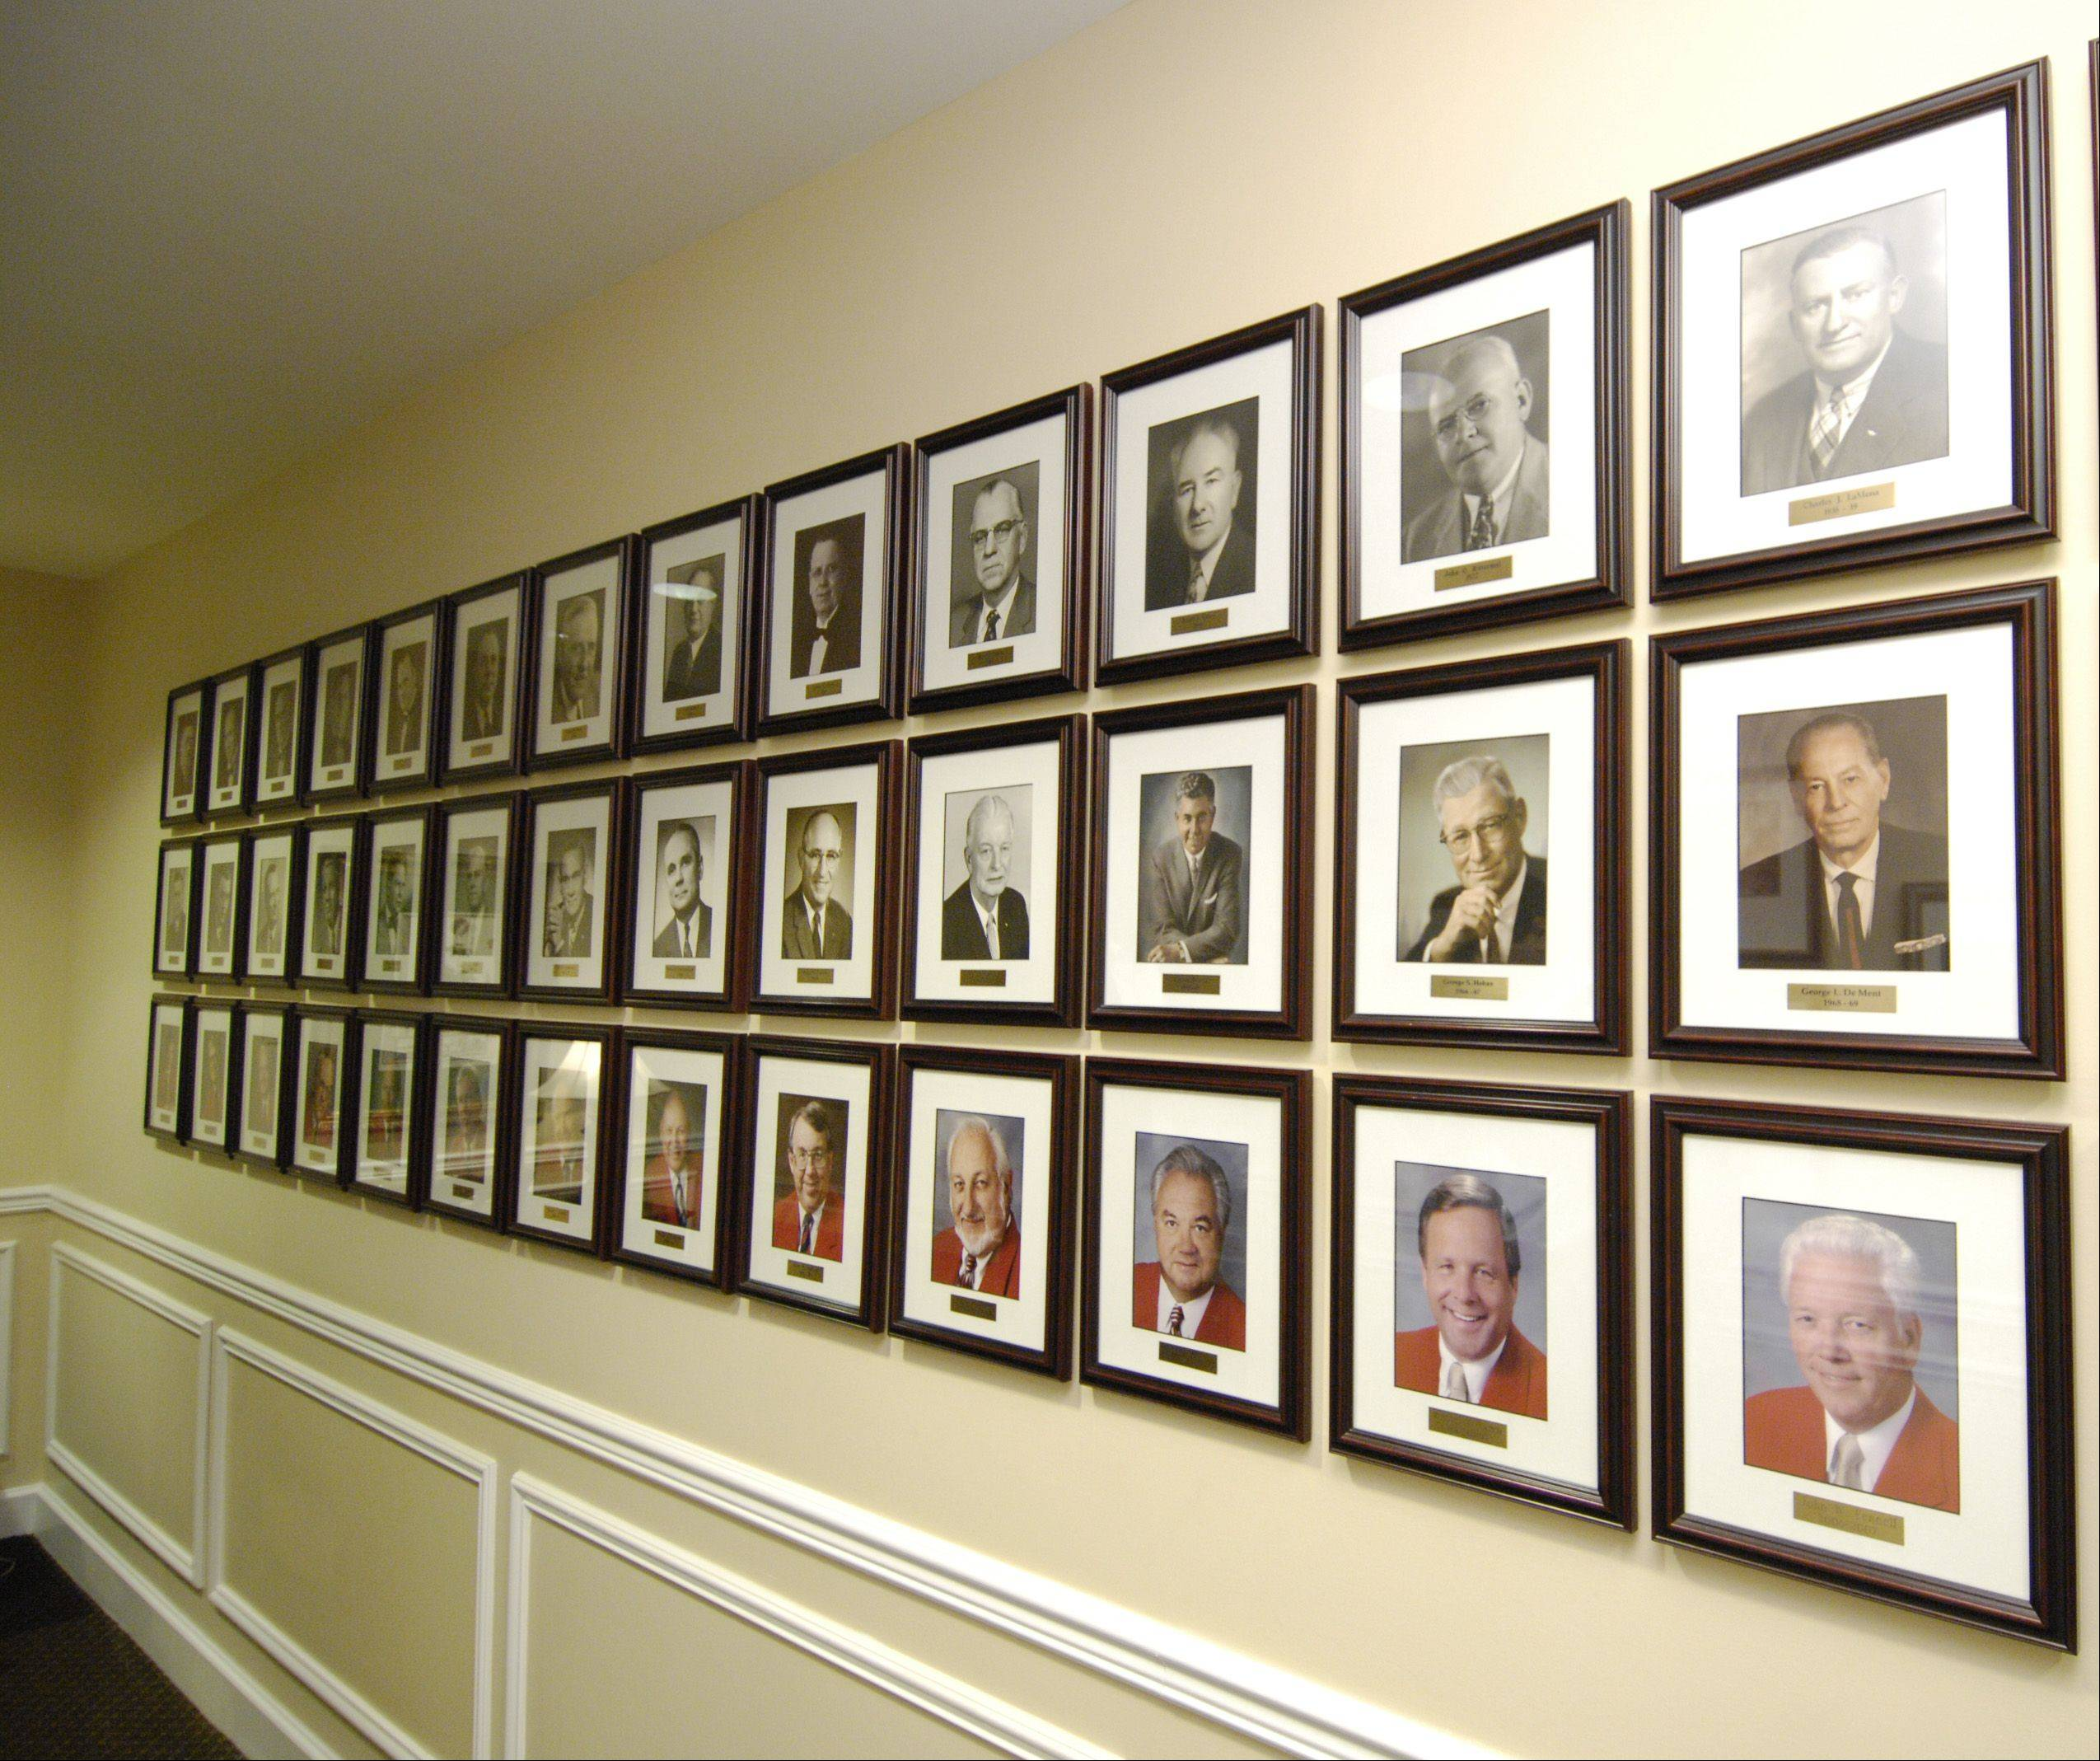 Photographs of Medinah Country Club's past presidents fill the walls of one of the hallways in the clubhouse.